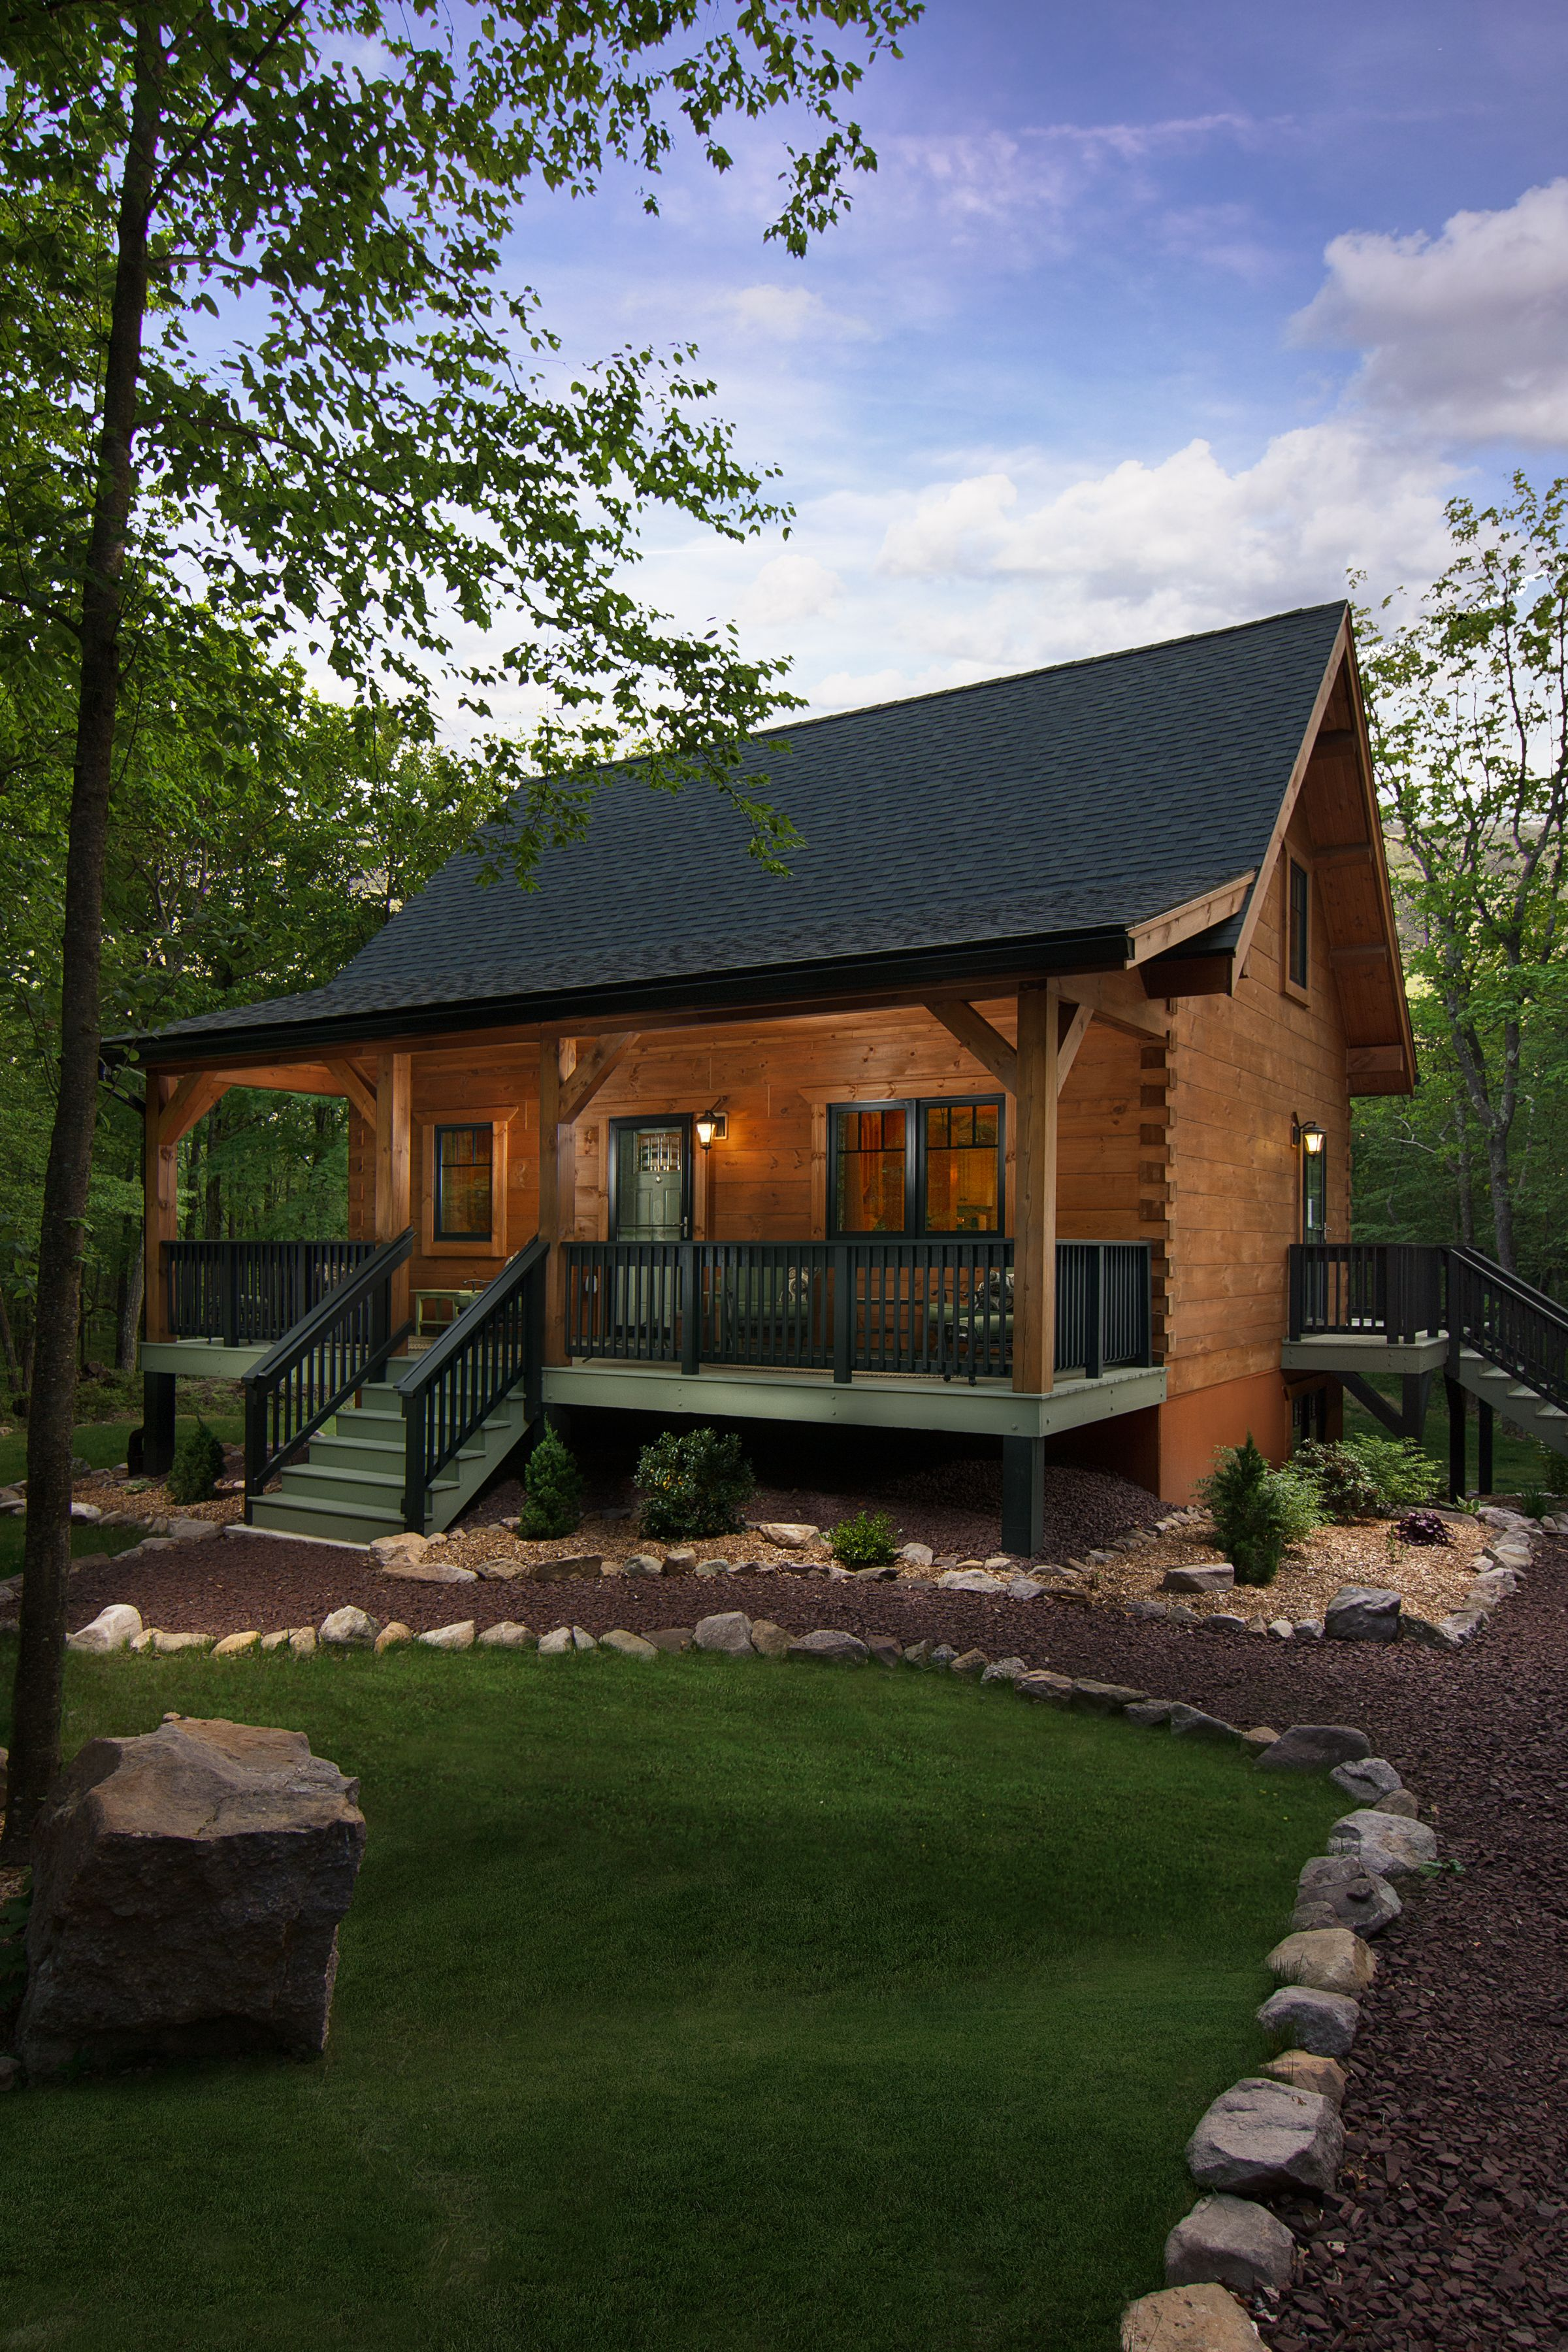 Exterior Of Log Home, Log Home Exterior, Log Home With